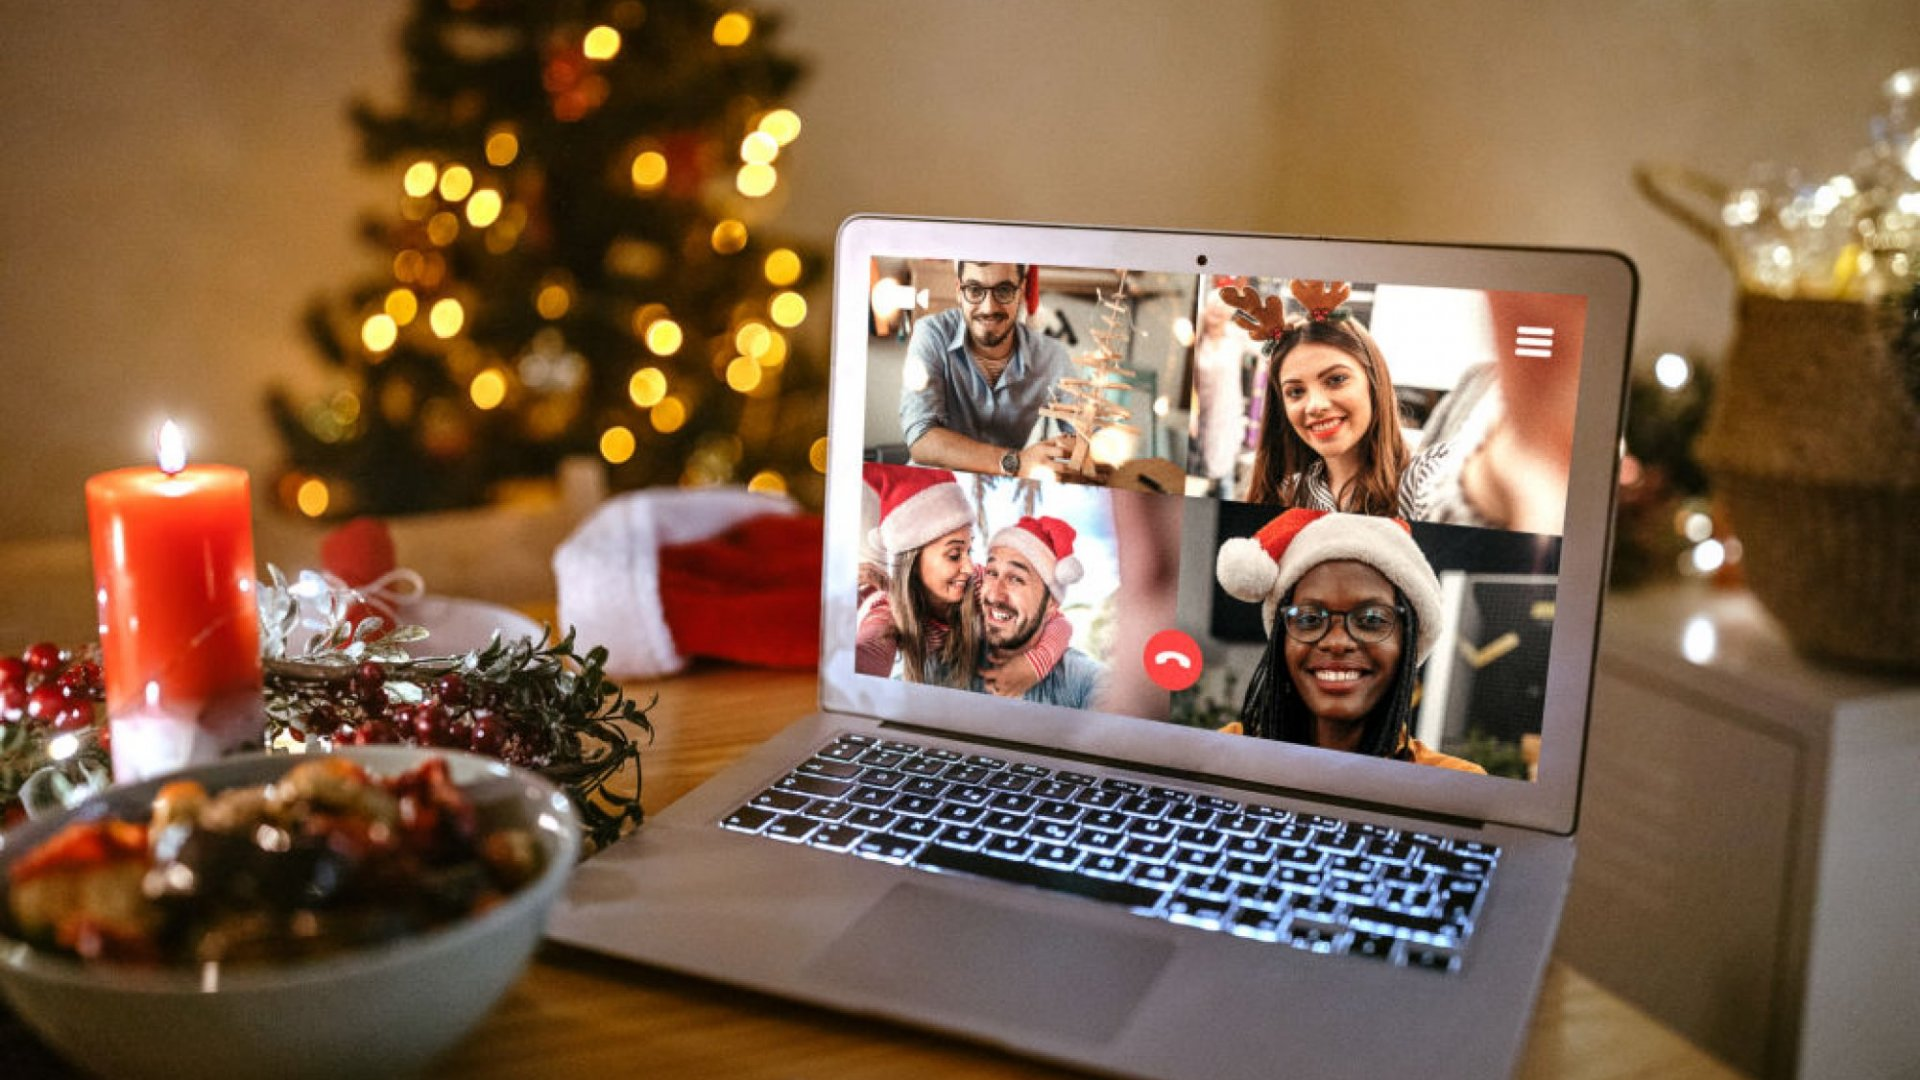 5 Creative Ways To Host An Amazing Office Holiday Party On Zoom Inc Com